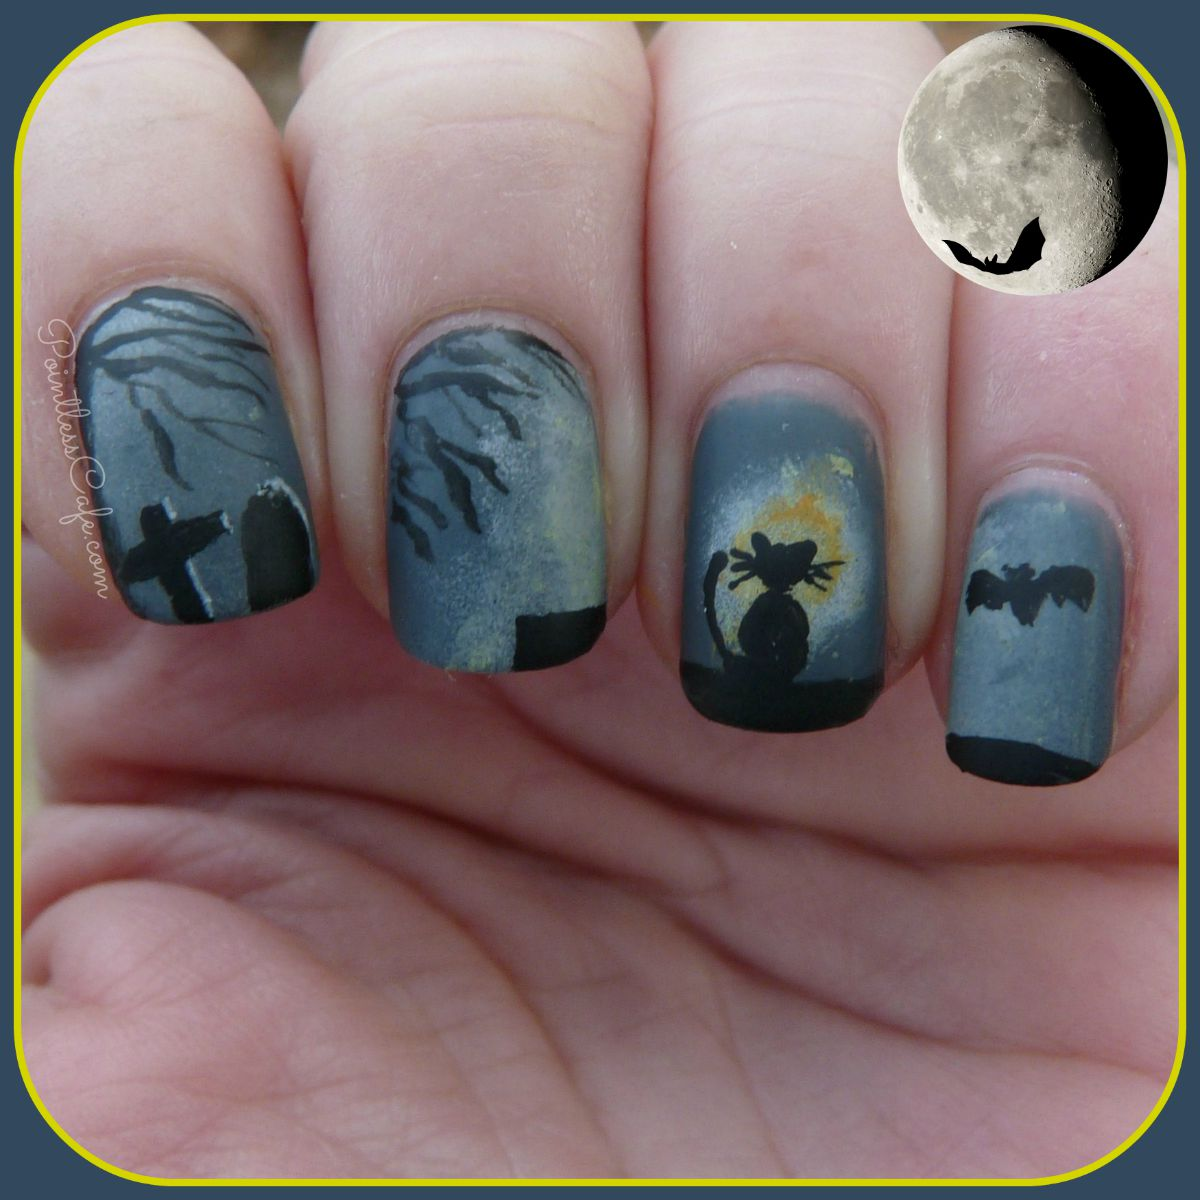 Spooky Halloween Nail Art: Black Cat in the Moonlight ...